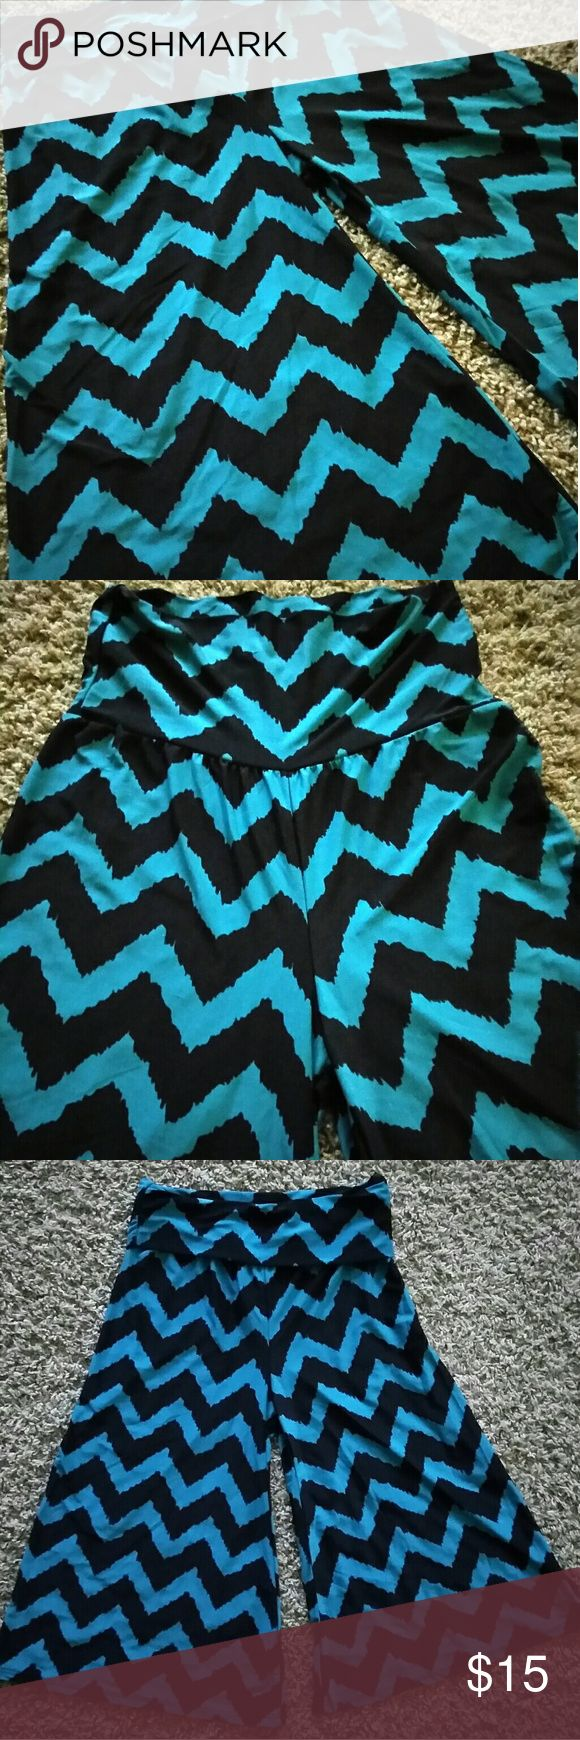 Stylish Palazzo Style Bermudas Black and teal Silky and stretchy material Yoga like waist band that folds over So, so comfortable and perfect for summer or thrown over a bathing suit for the beach! boutique Shorts Bermudas